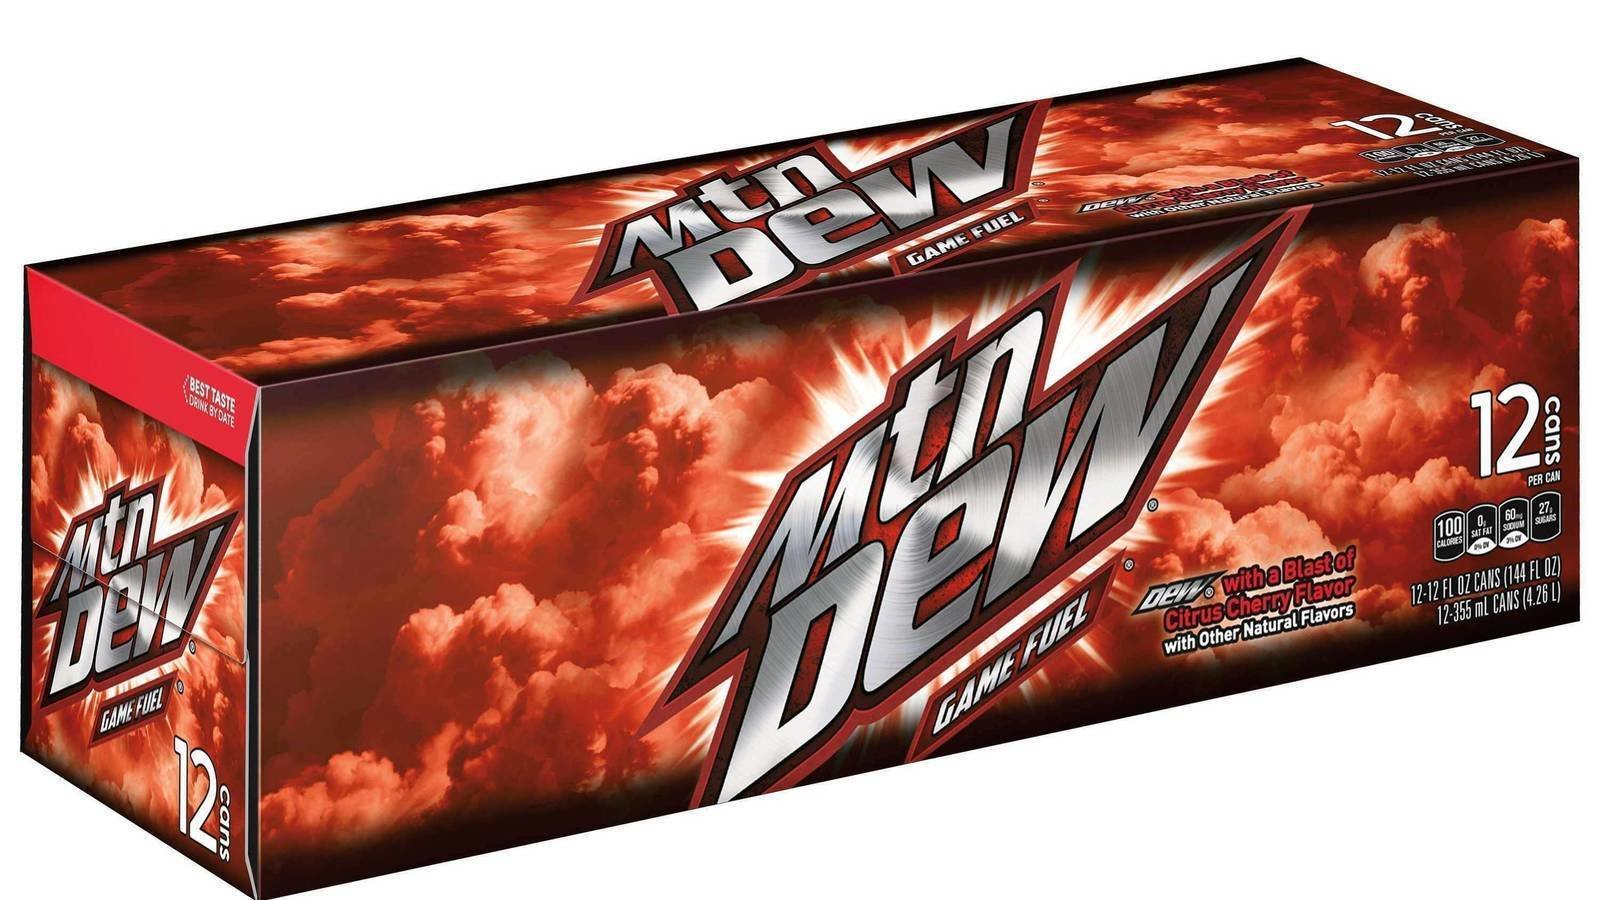 Petition Mountain Dew Bring Back Mountain Dew Citrus